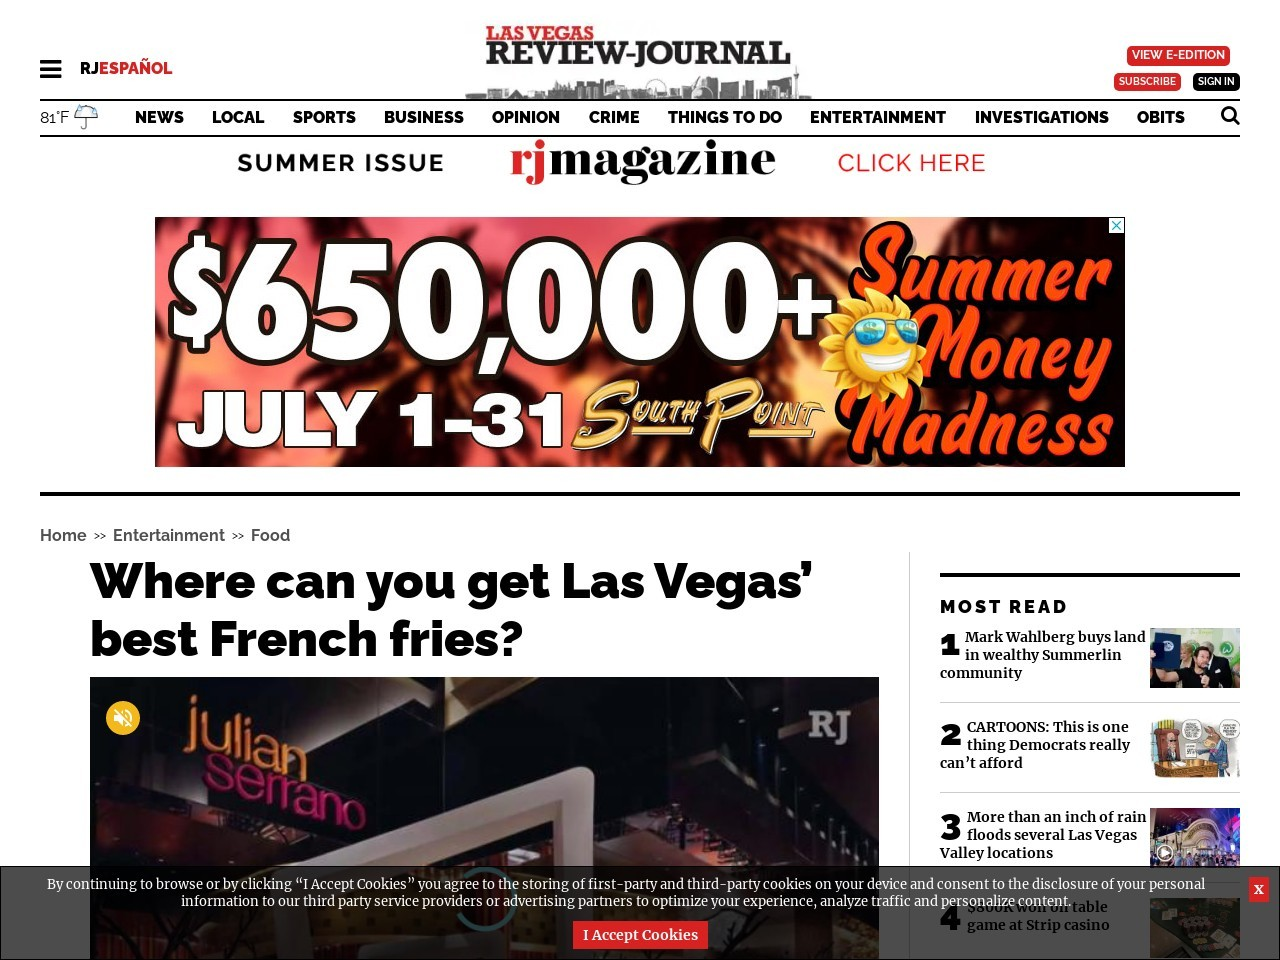 Where can you get Las Vegas' best French fries?